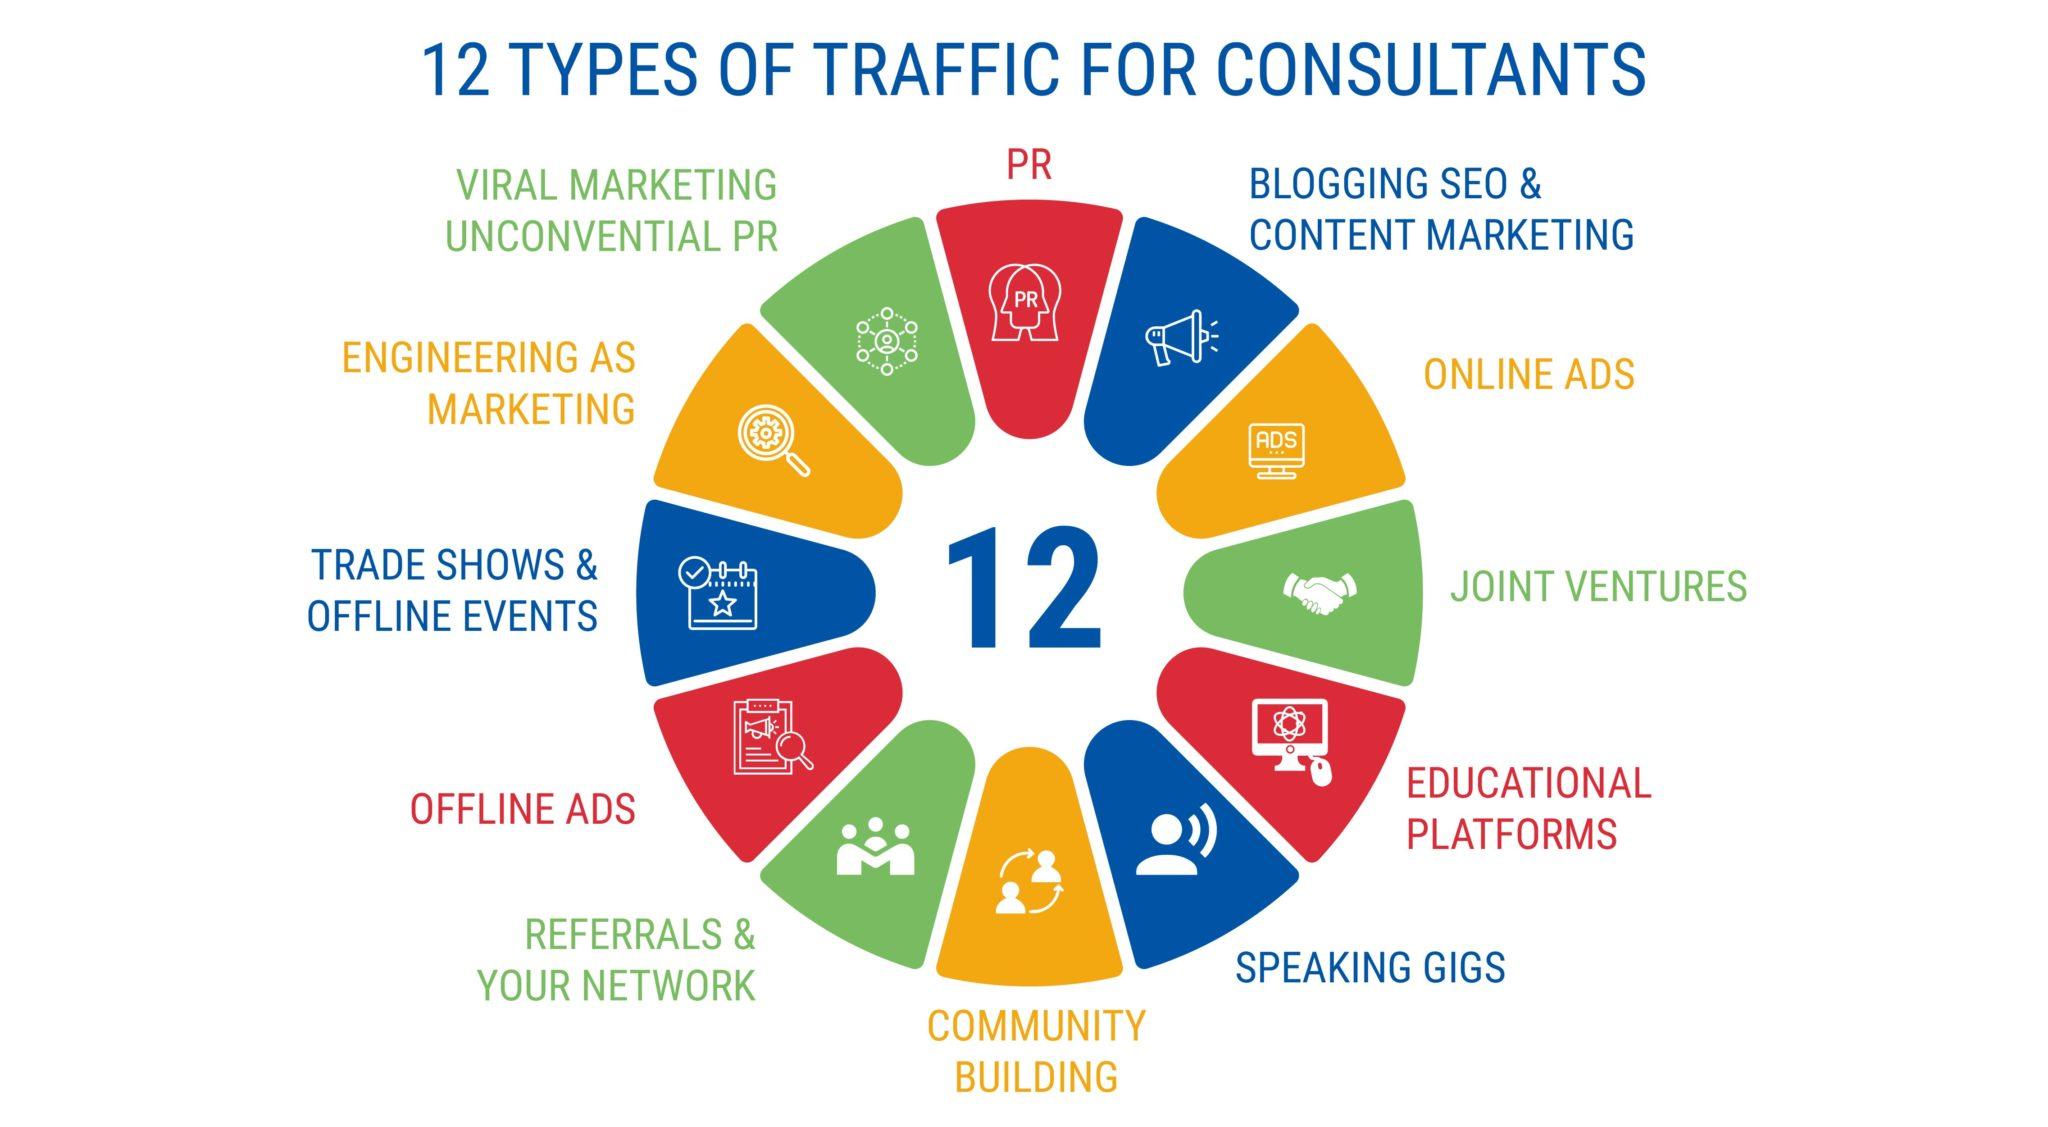 12 TYPES OF TRAFFIC FOR CONSULTANTS